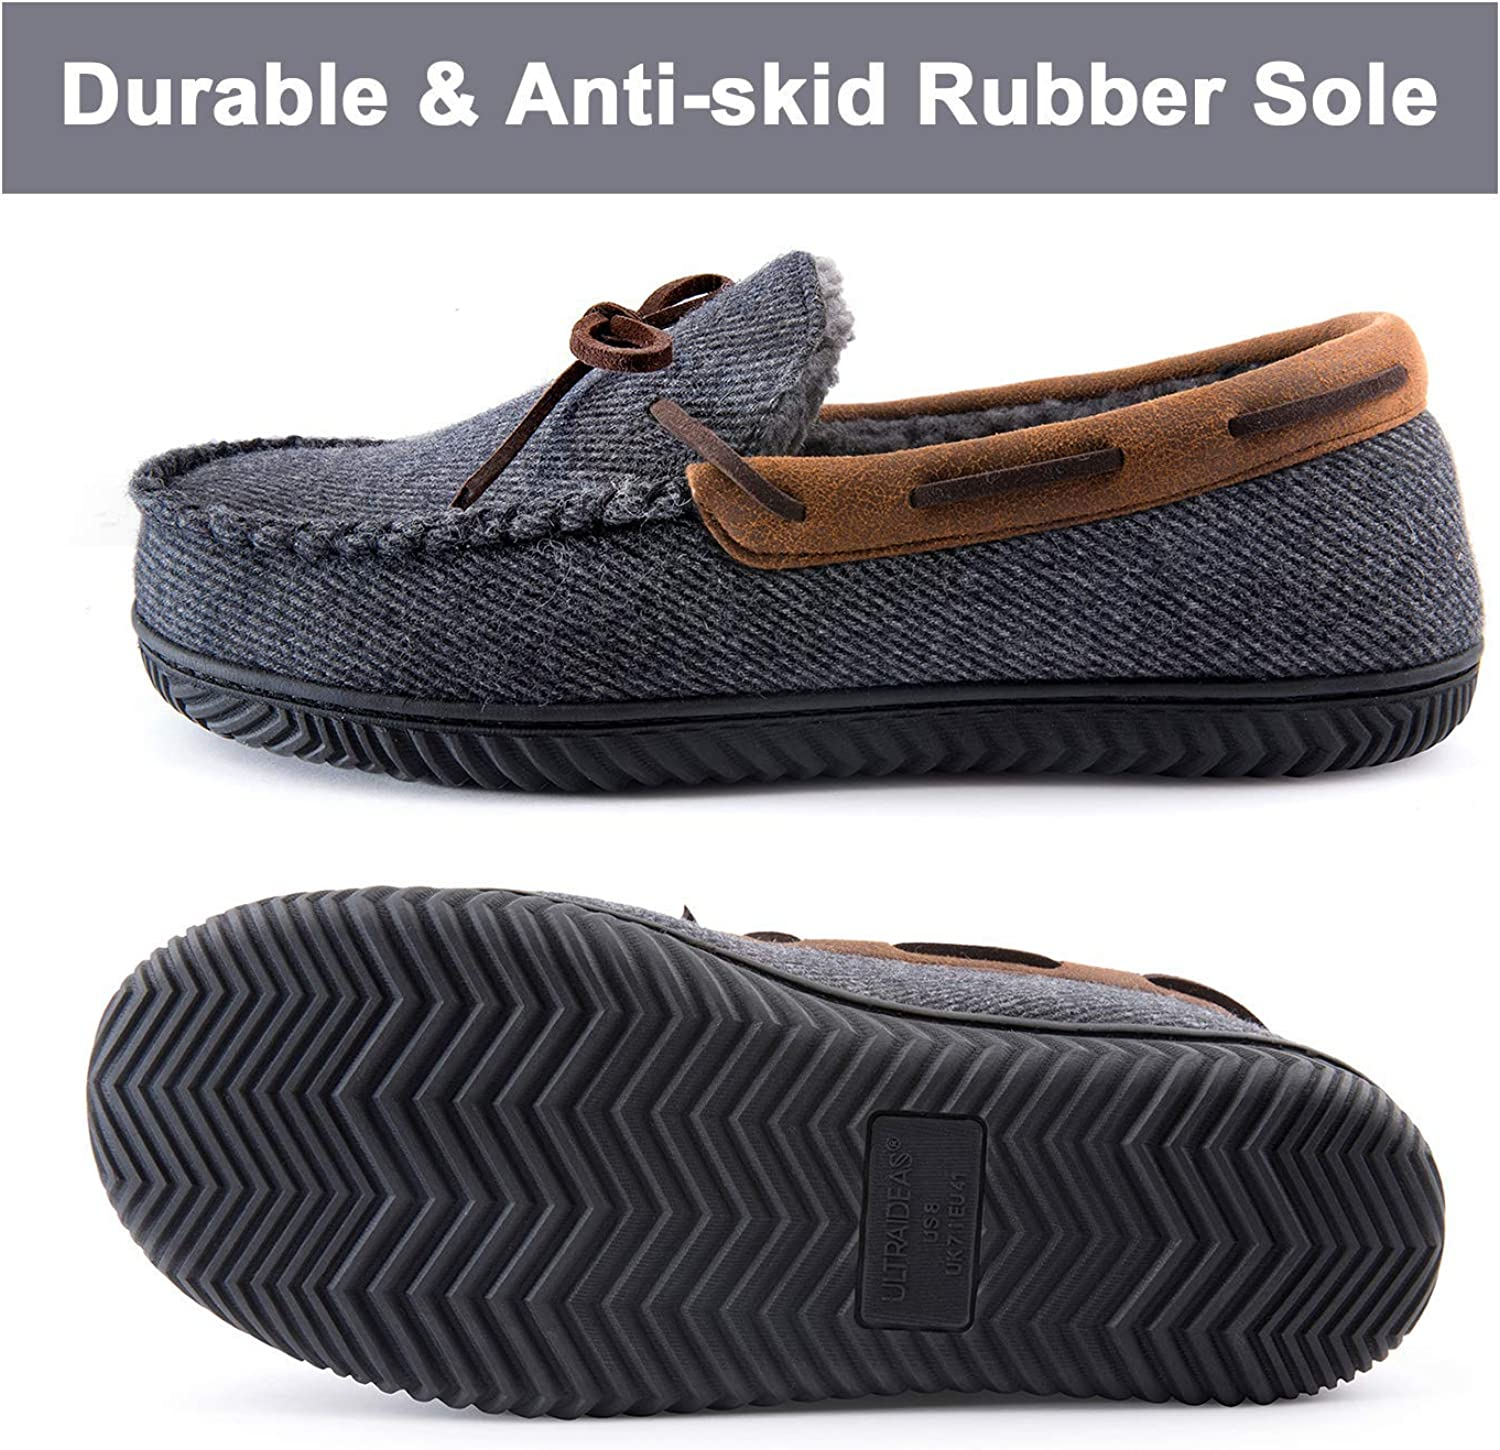 ULTRAIDEAS Men/'s Comfort Moccasin Slippers Memory Foam House Shoes with Anti-Skid Rubber Sole Indoor//Outdoor